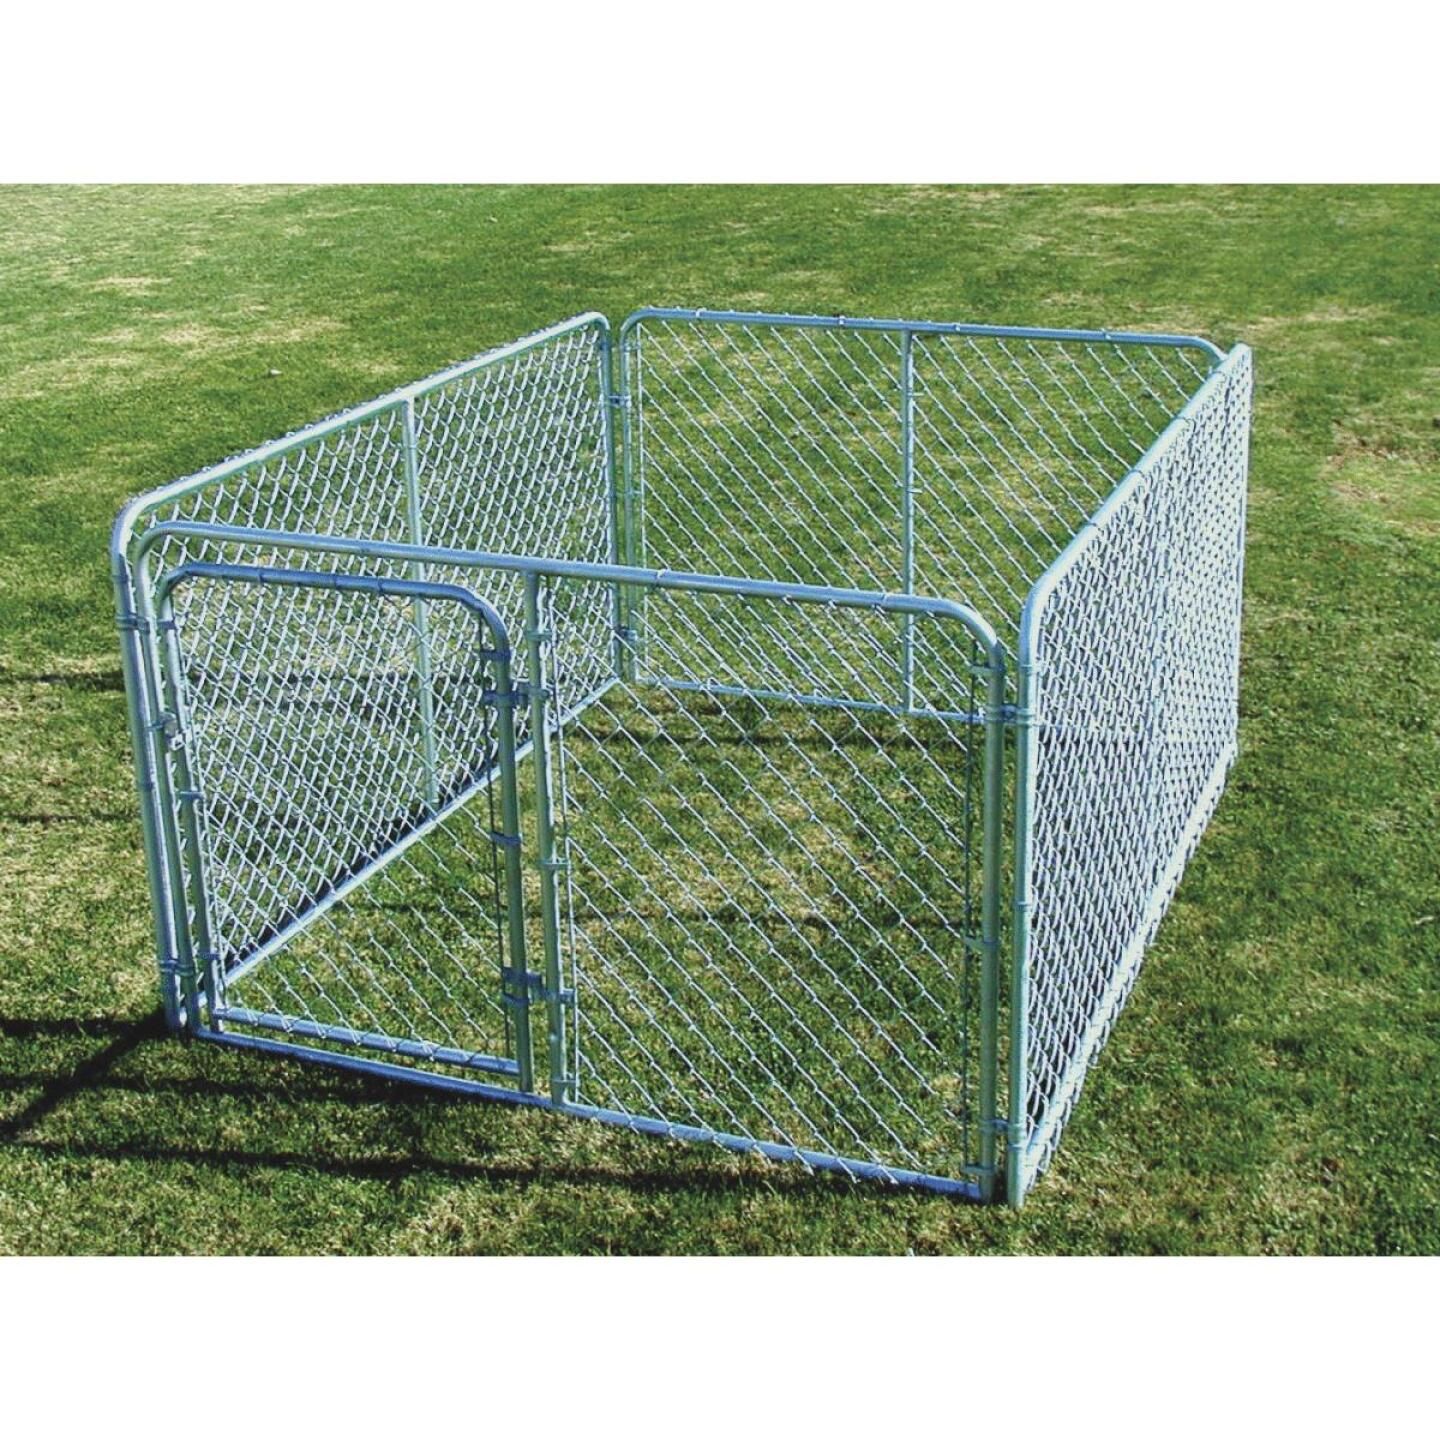 Fence Master Silver Series 6 Ft. W. x 4 Ft. H. x 8 Ft. L. Steel Outdoor Pet Kennel Image 1